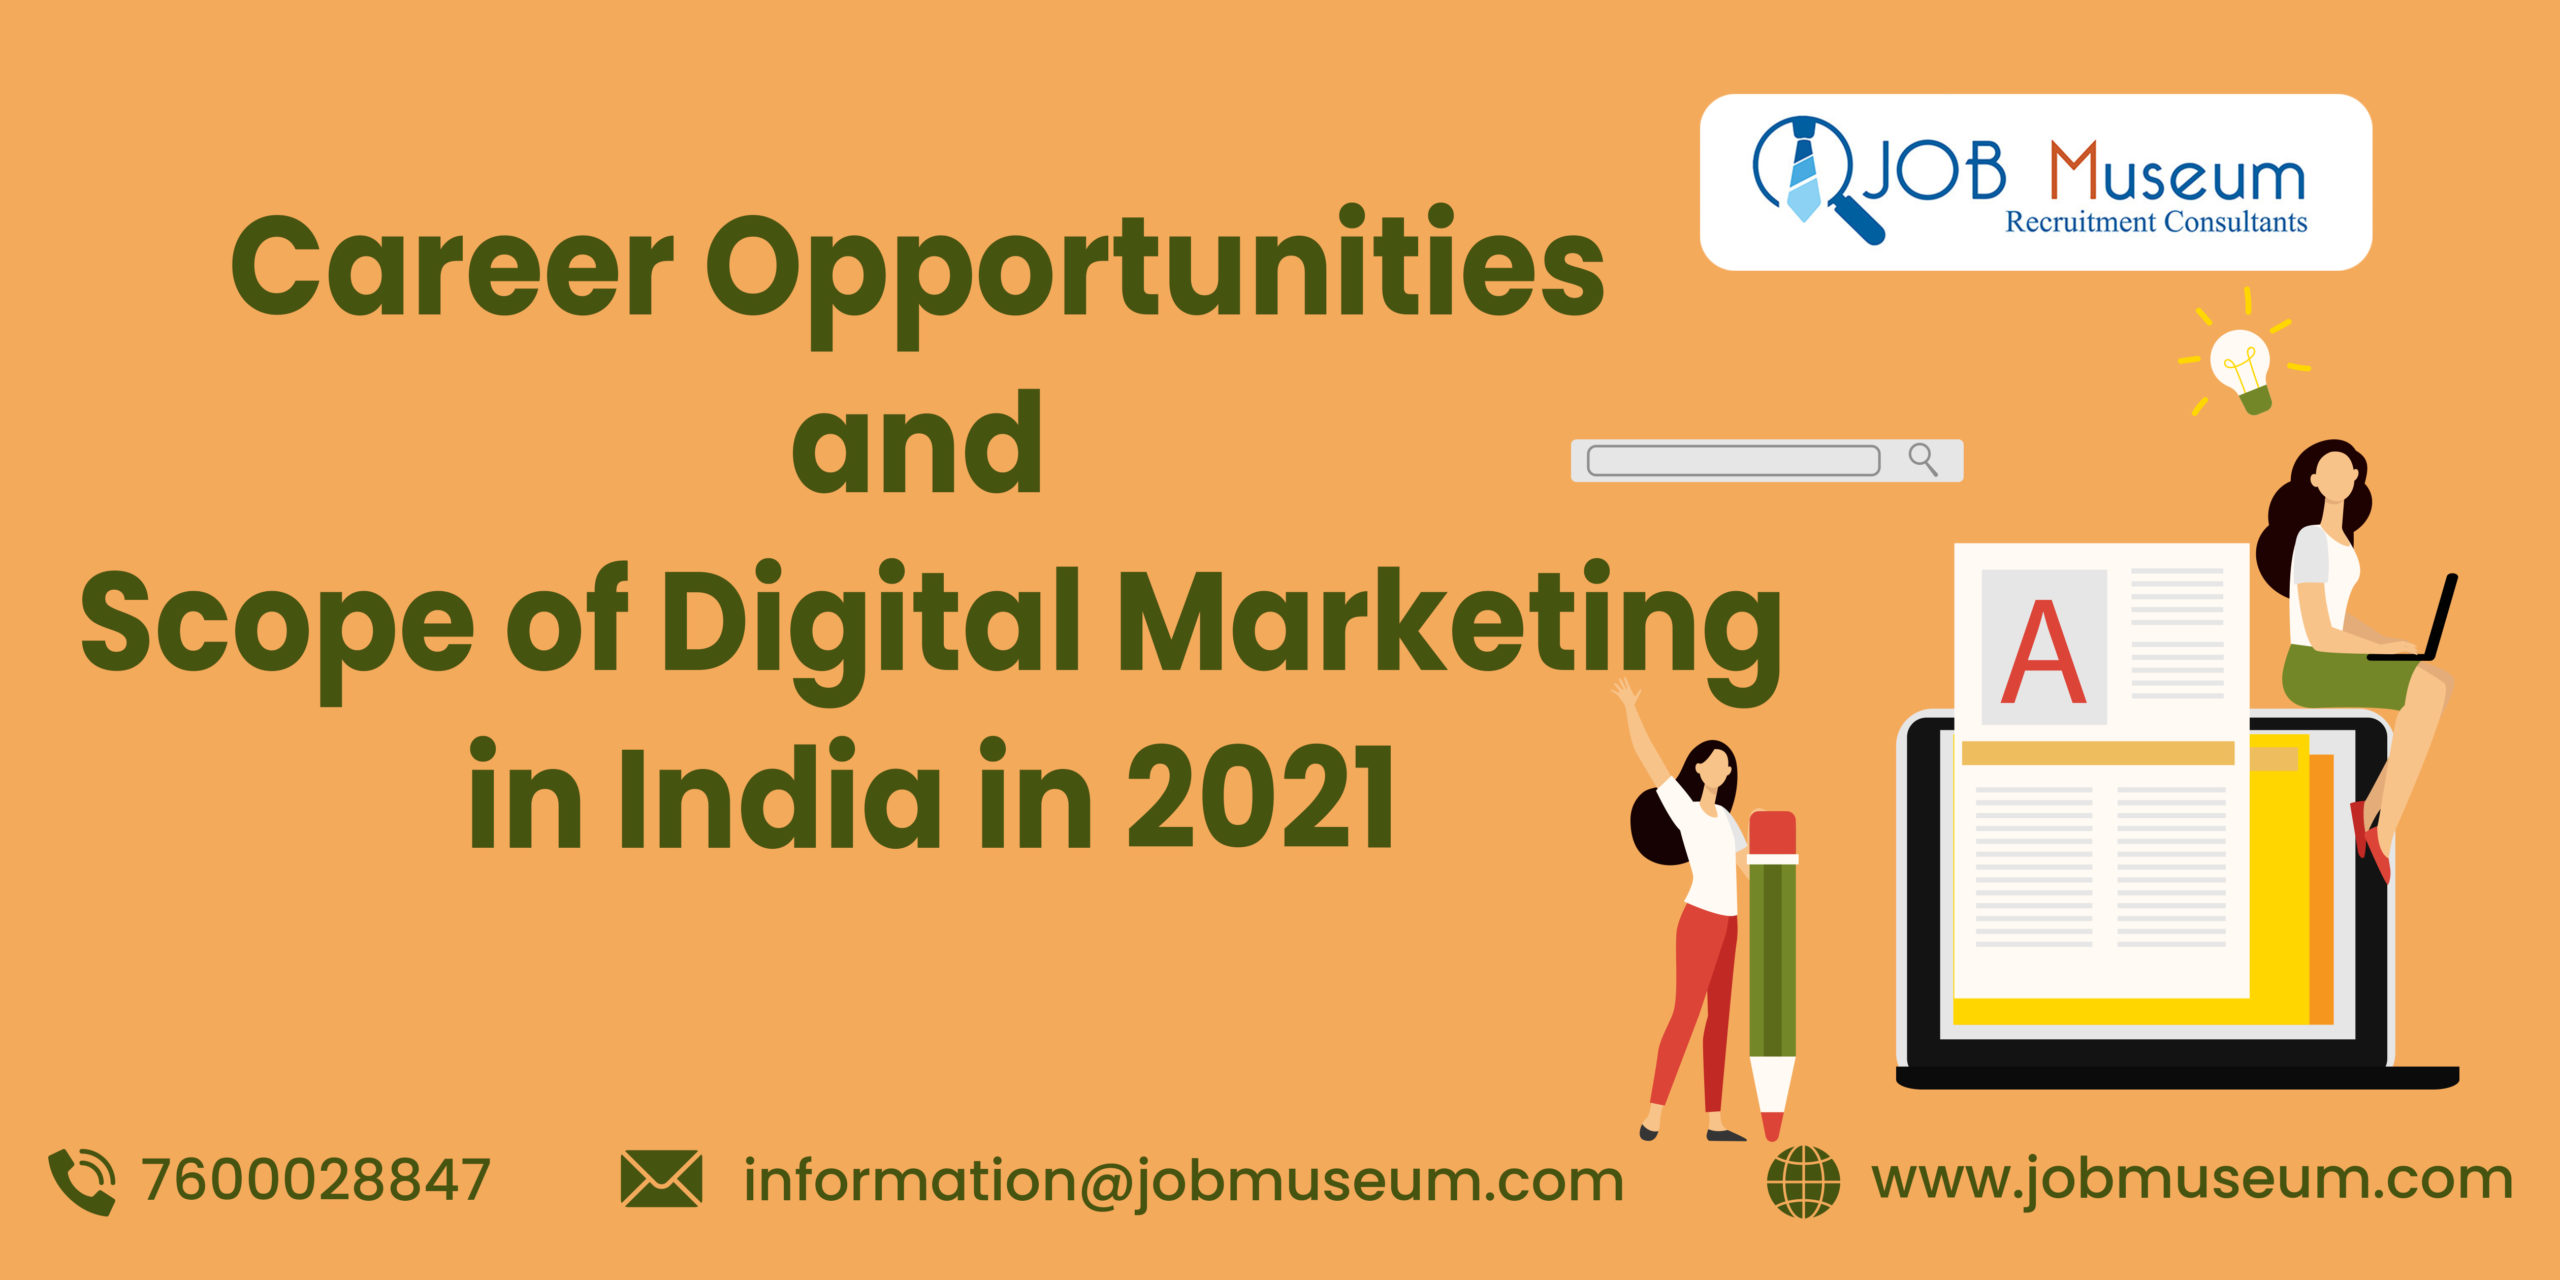 Career opportunities and Scope of digital marketing in India 2021